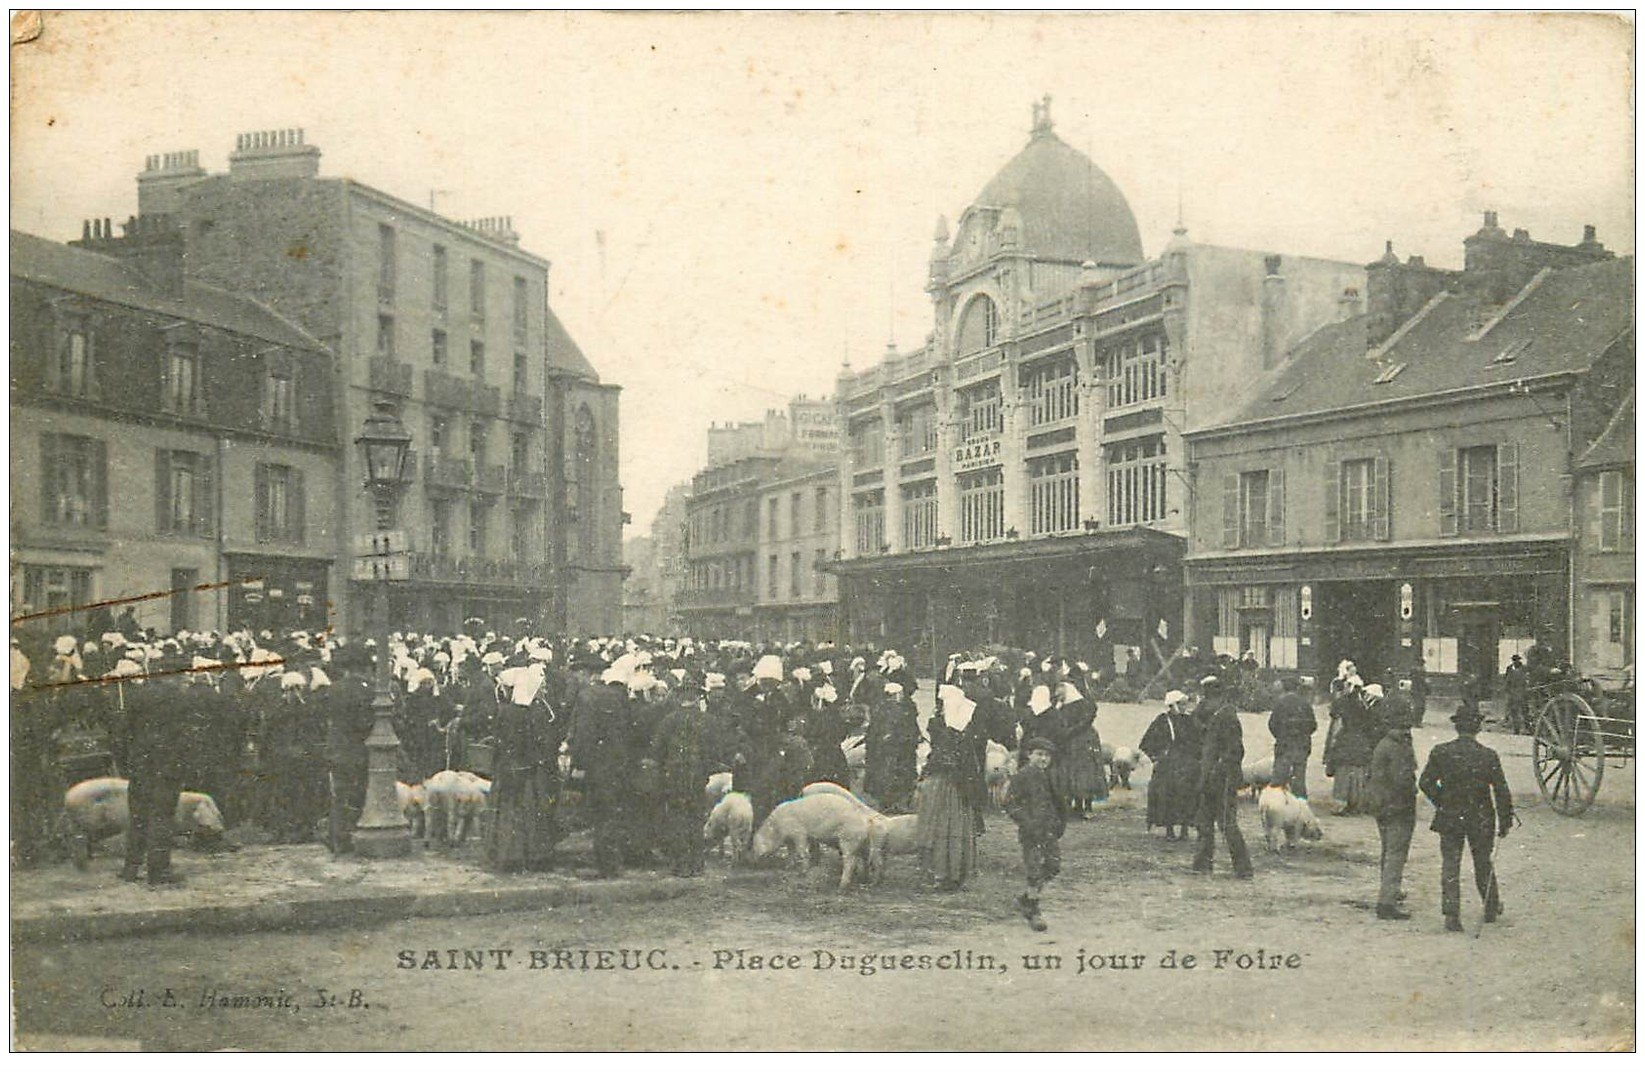 22 saint brieuc jour de foire place dugesclin 1919 avec cochons et porcs bazar parisien. Black Bedroom Furniture Sets. Home Design Ideas